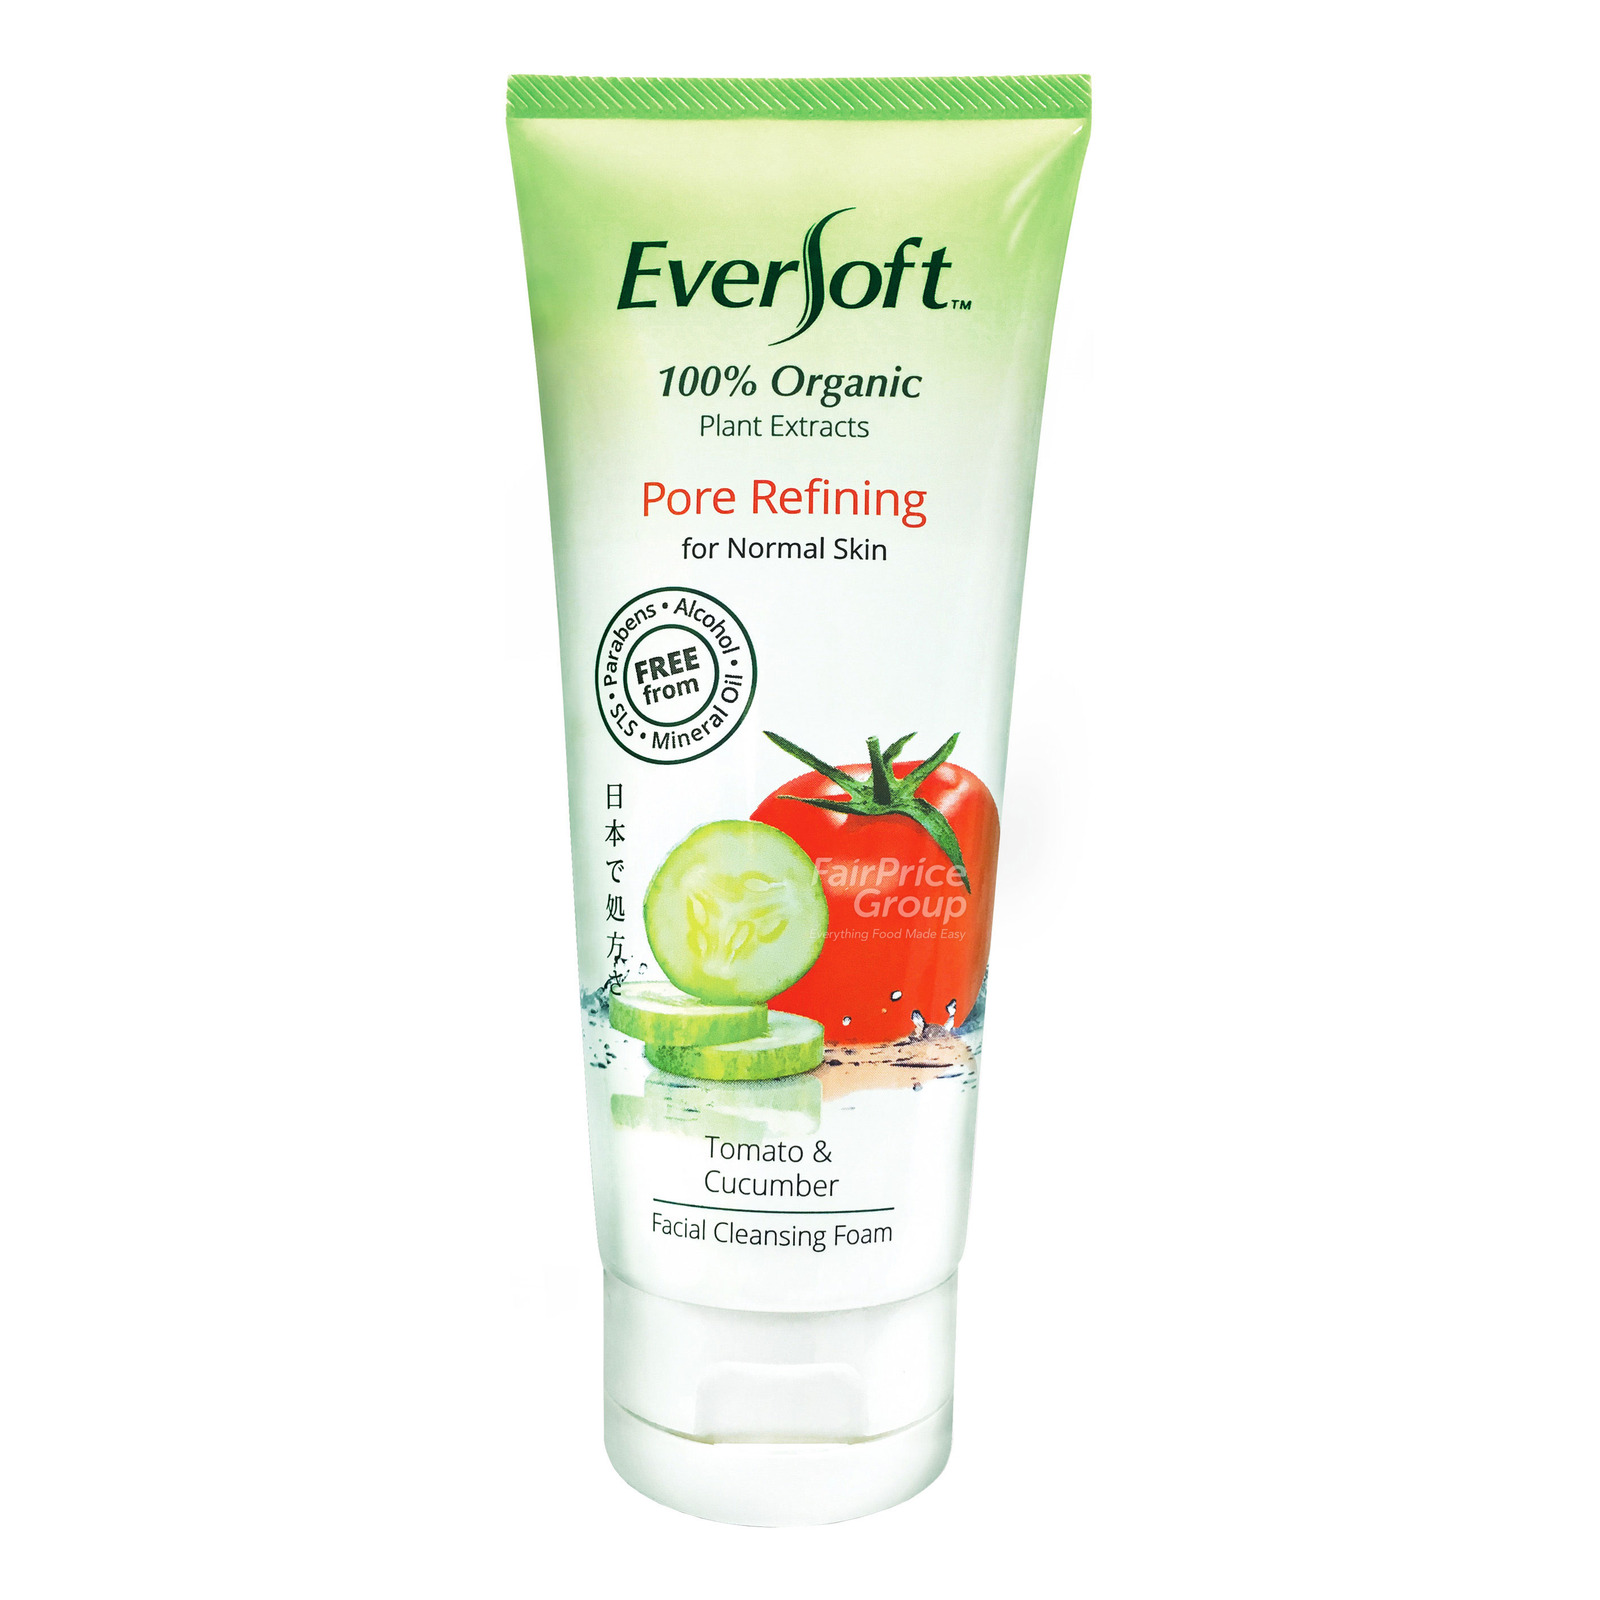 Eversoft Organic Cleanser Foam - Pore Refining